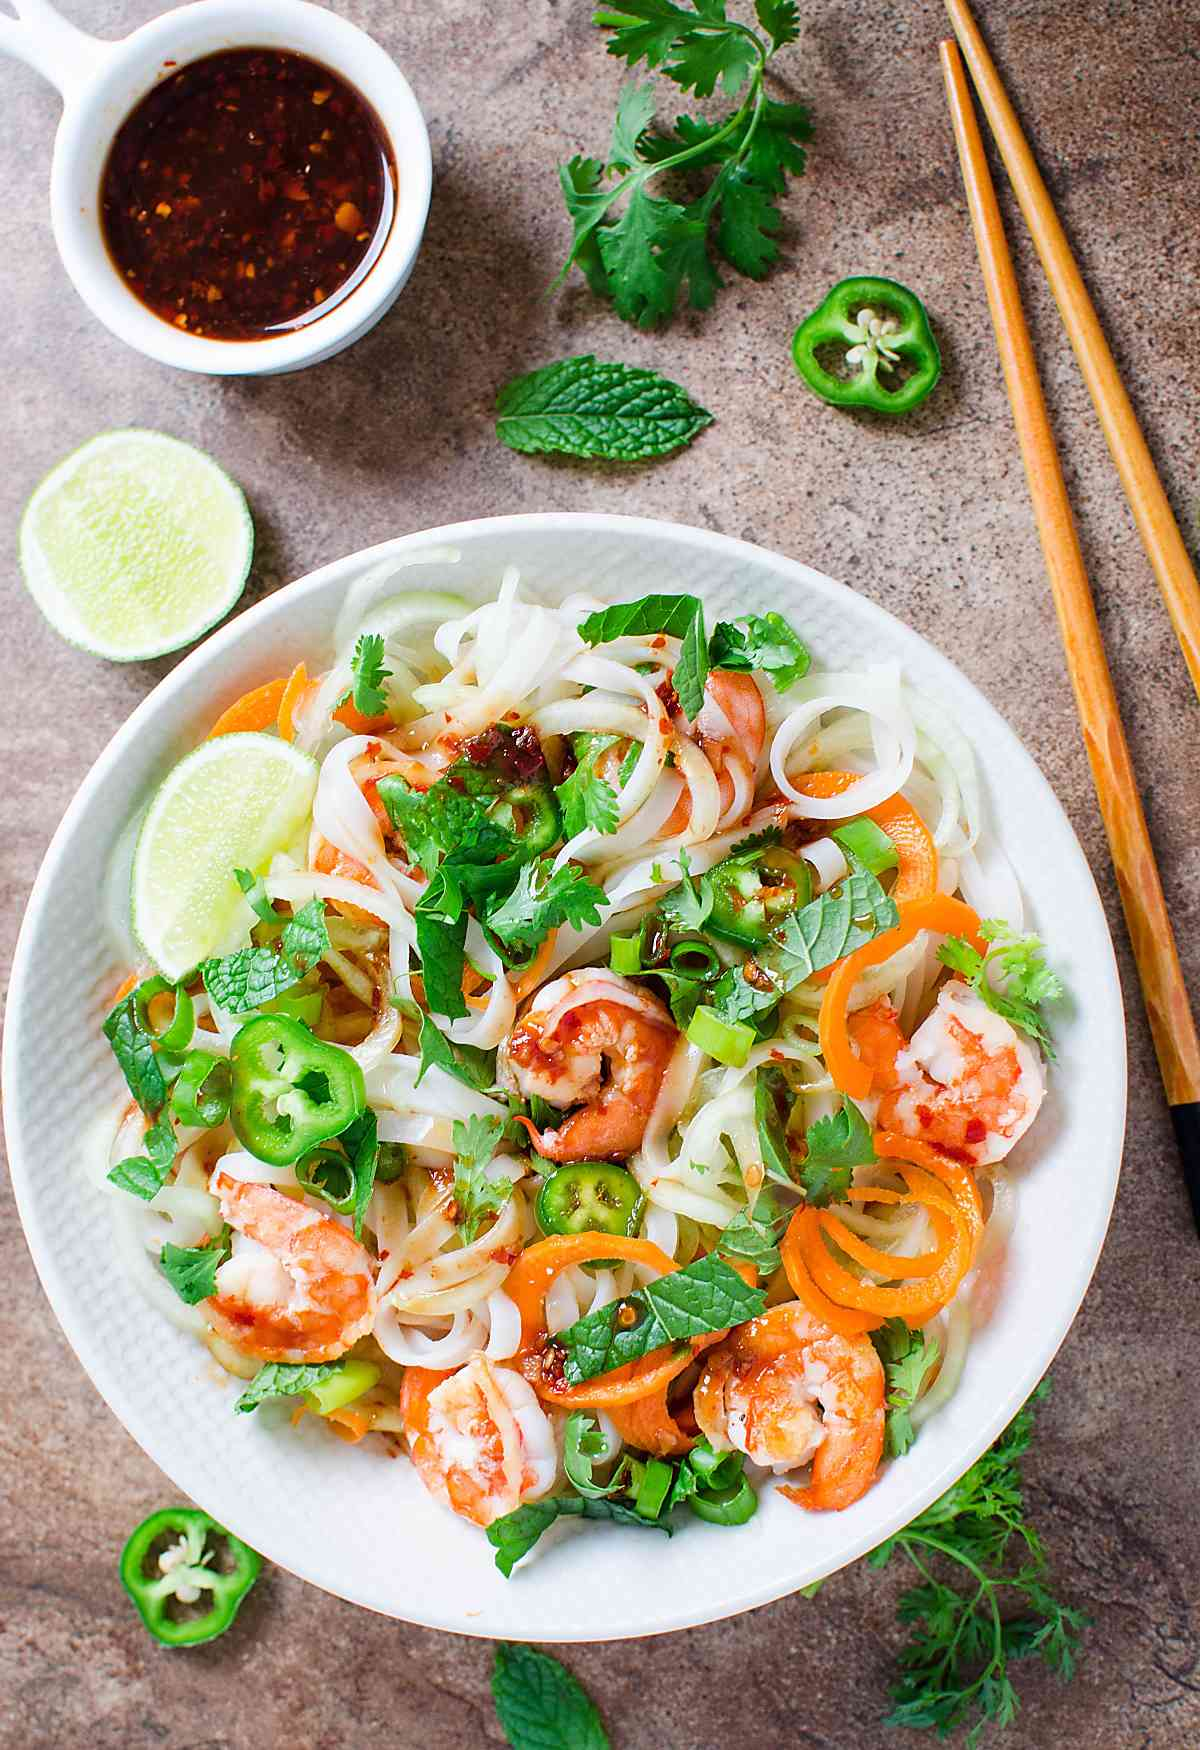 ThisVietnamese Summer Roll Salad Bowl is a perfect alternative to wrapping Vietnamese summer rolls in rice paper wraps.